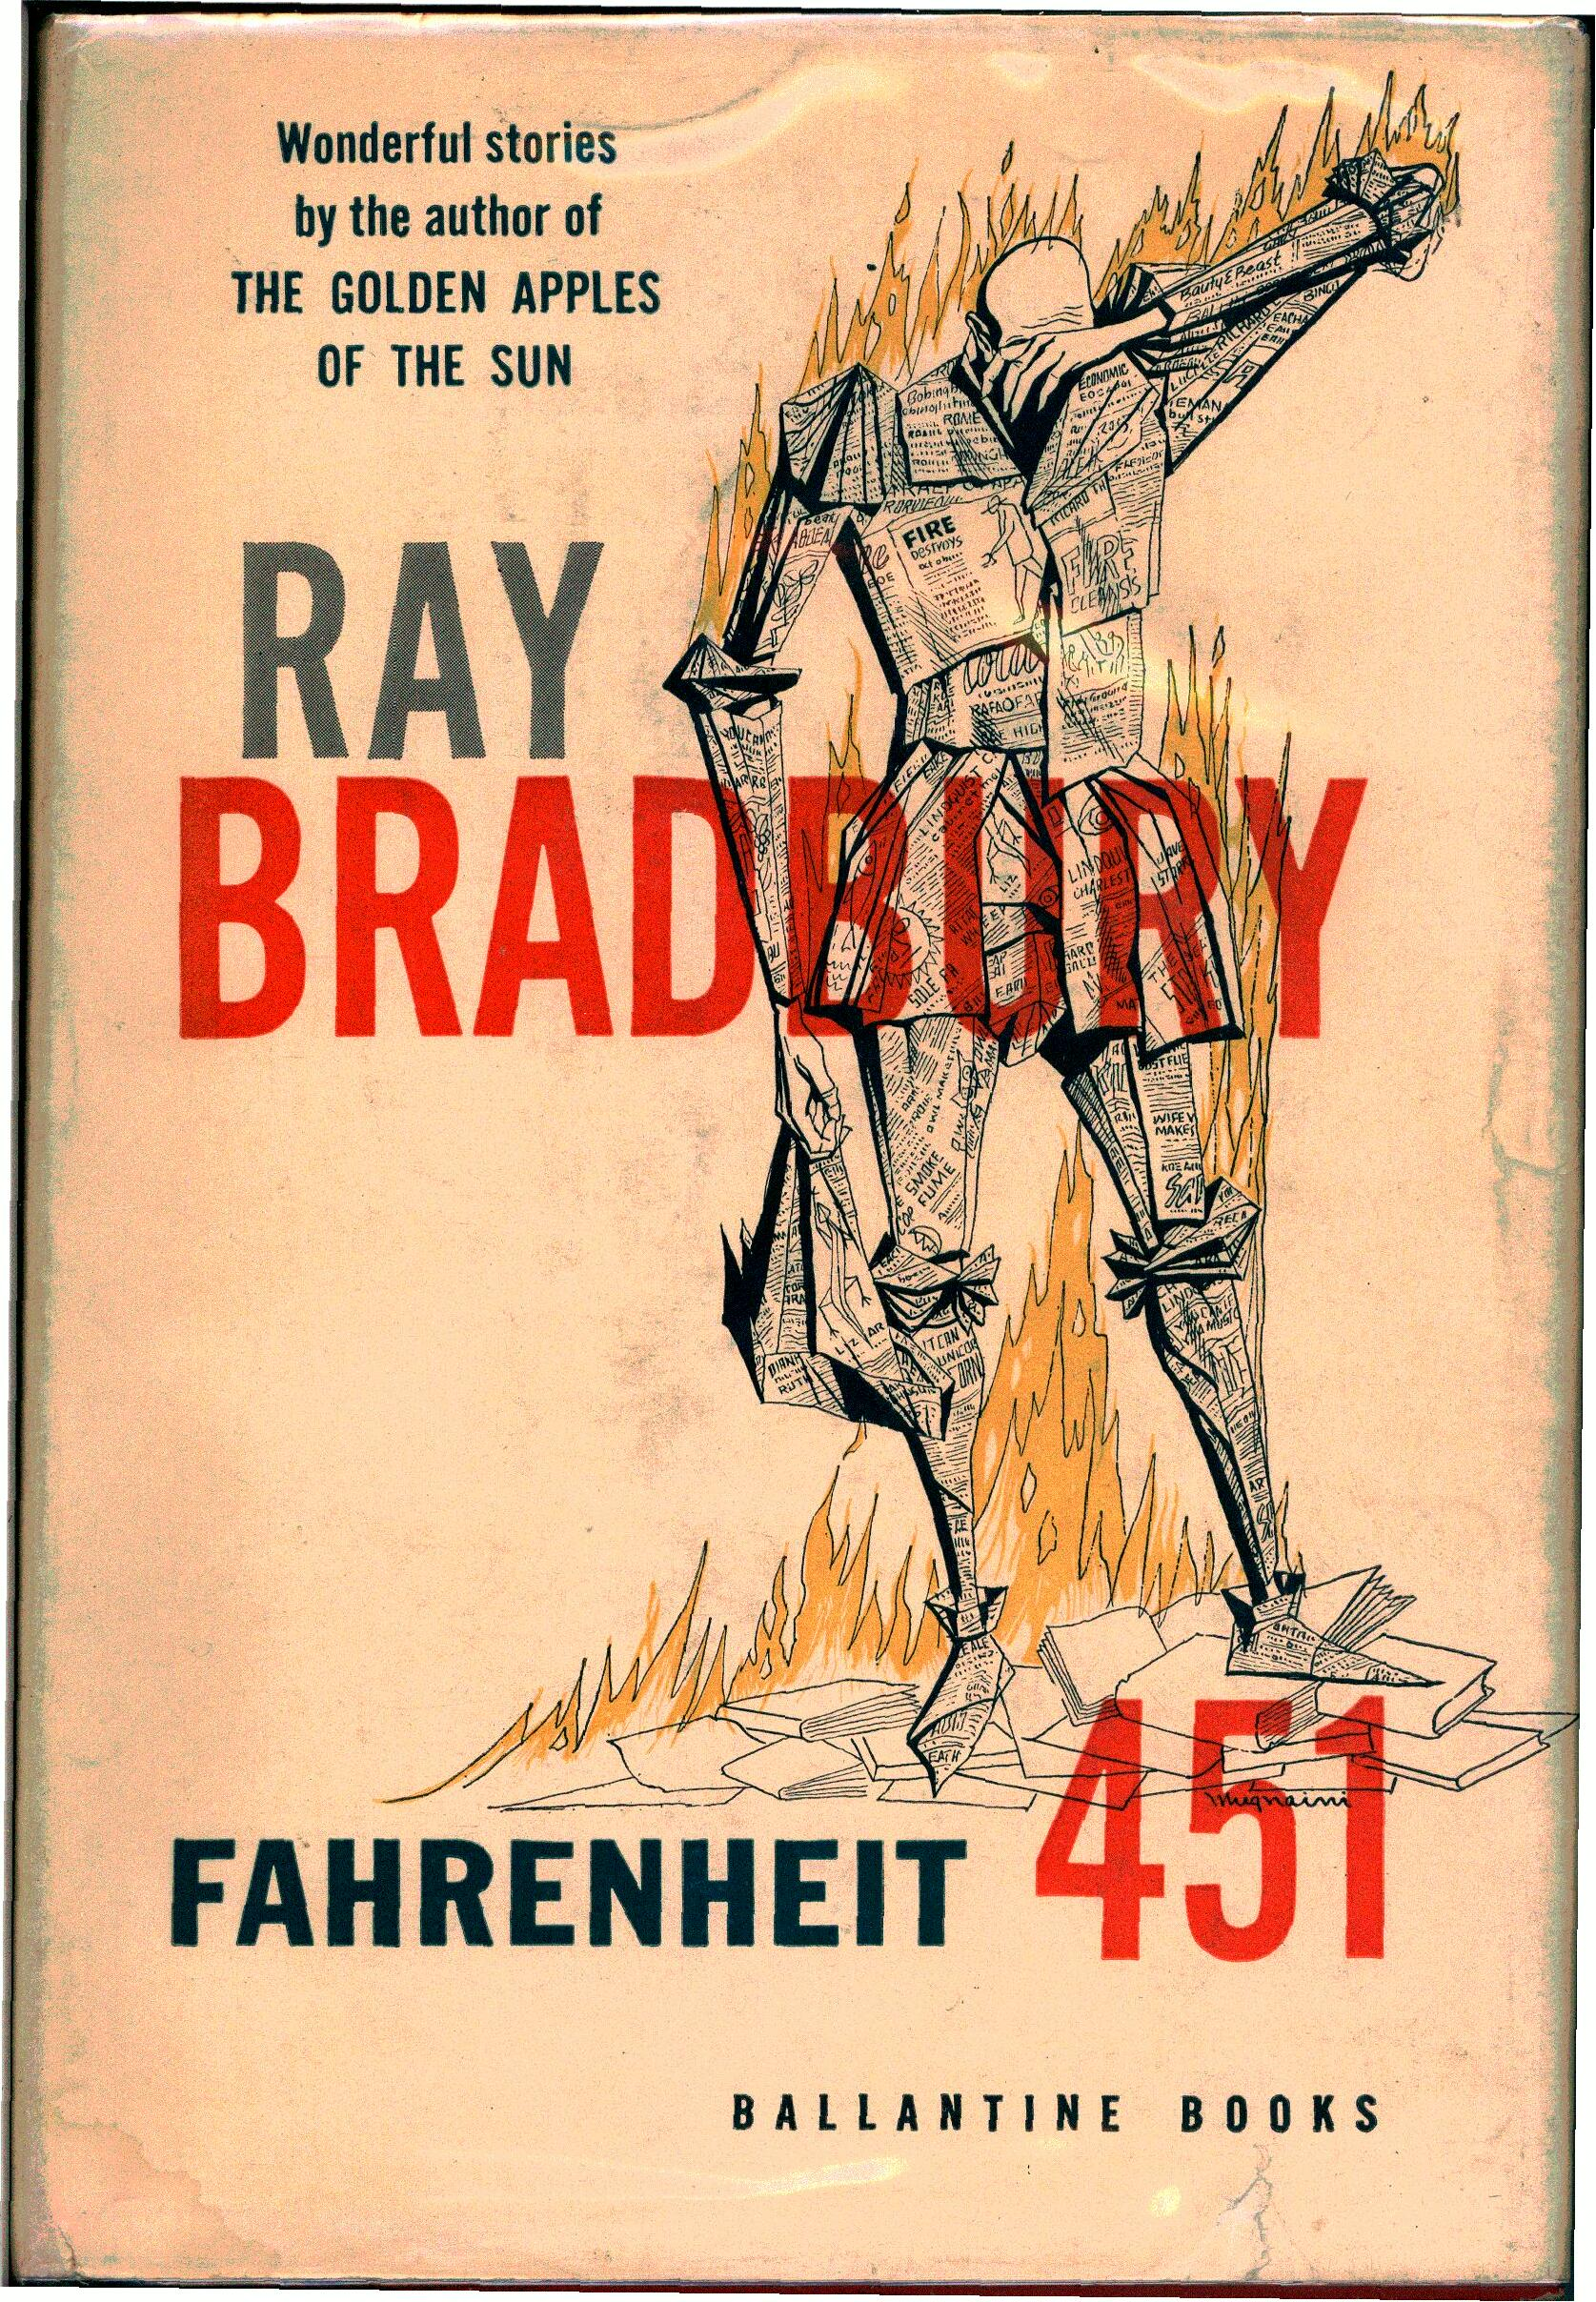 Fahrenheit 451 essay on how it ties into our world?